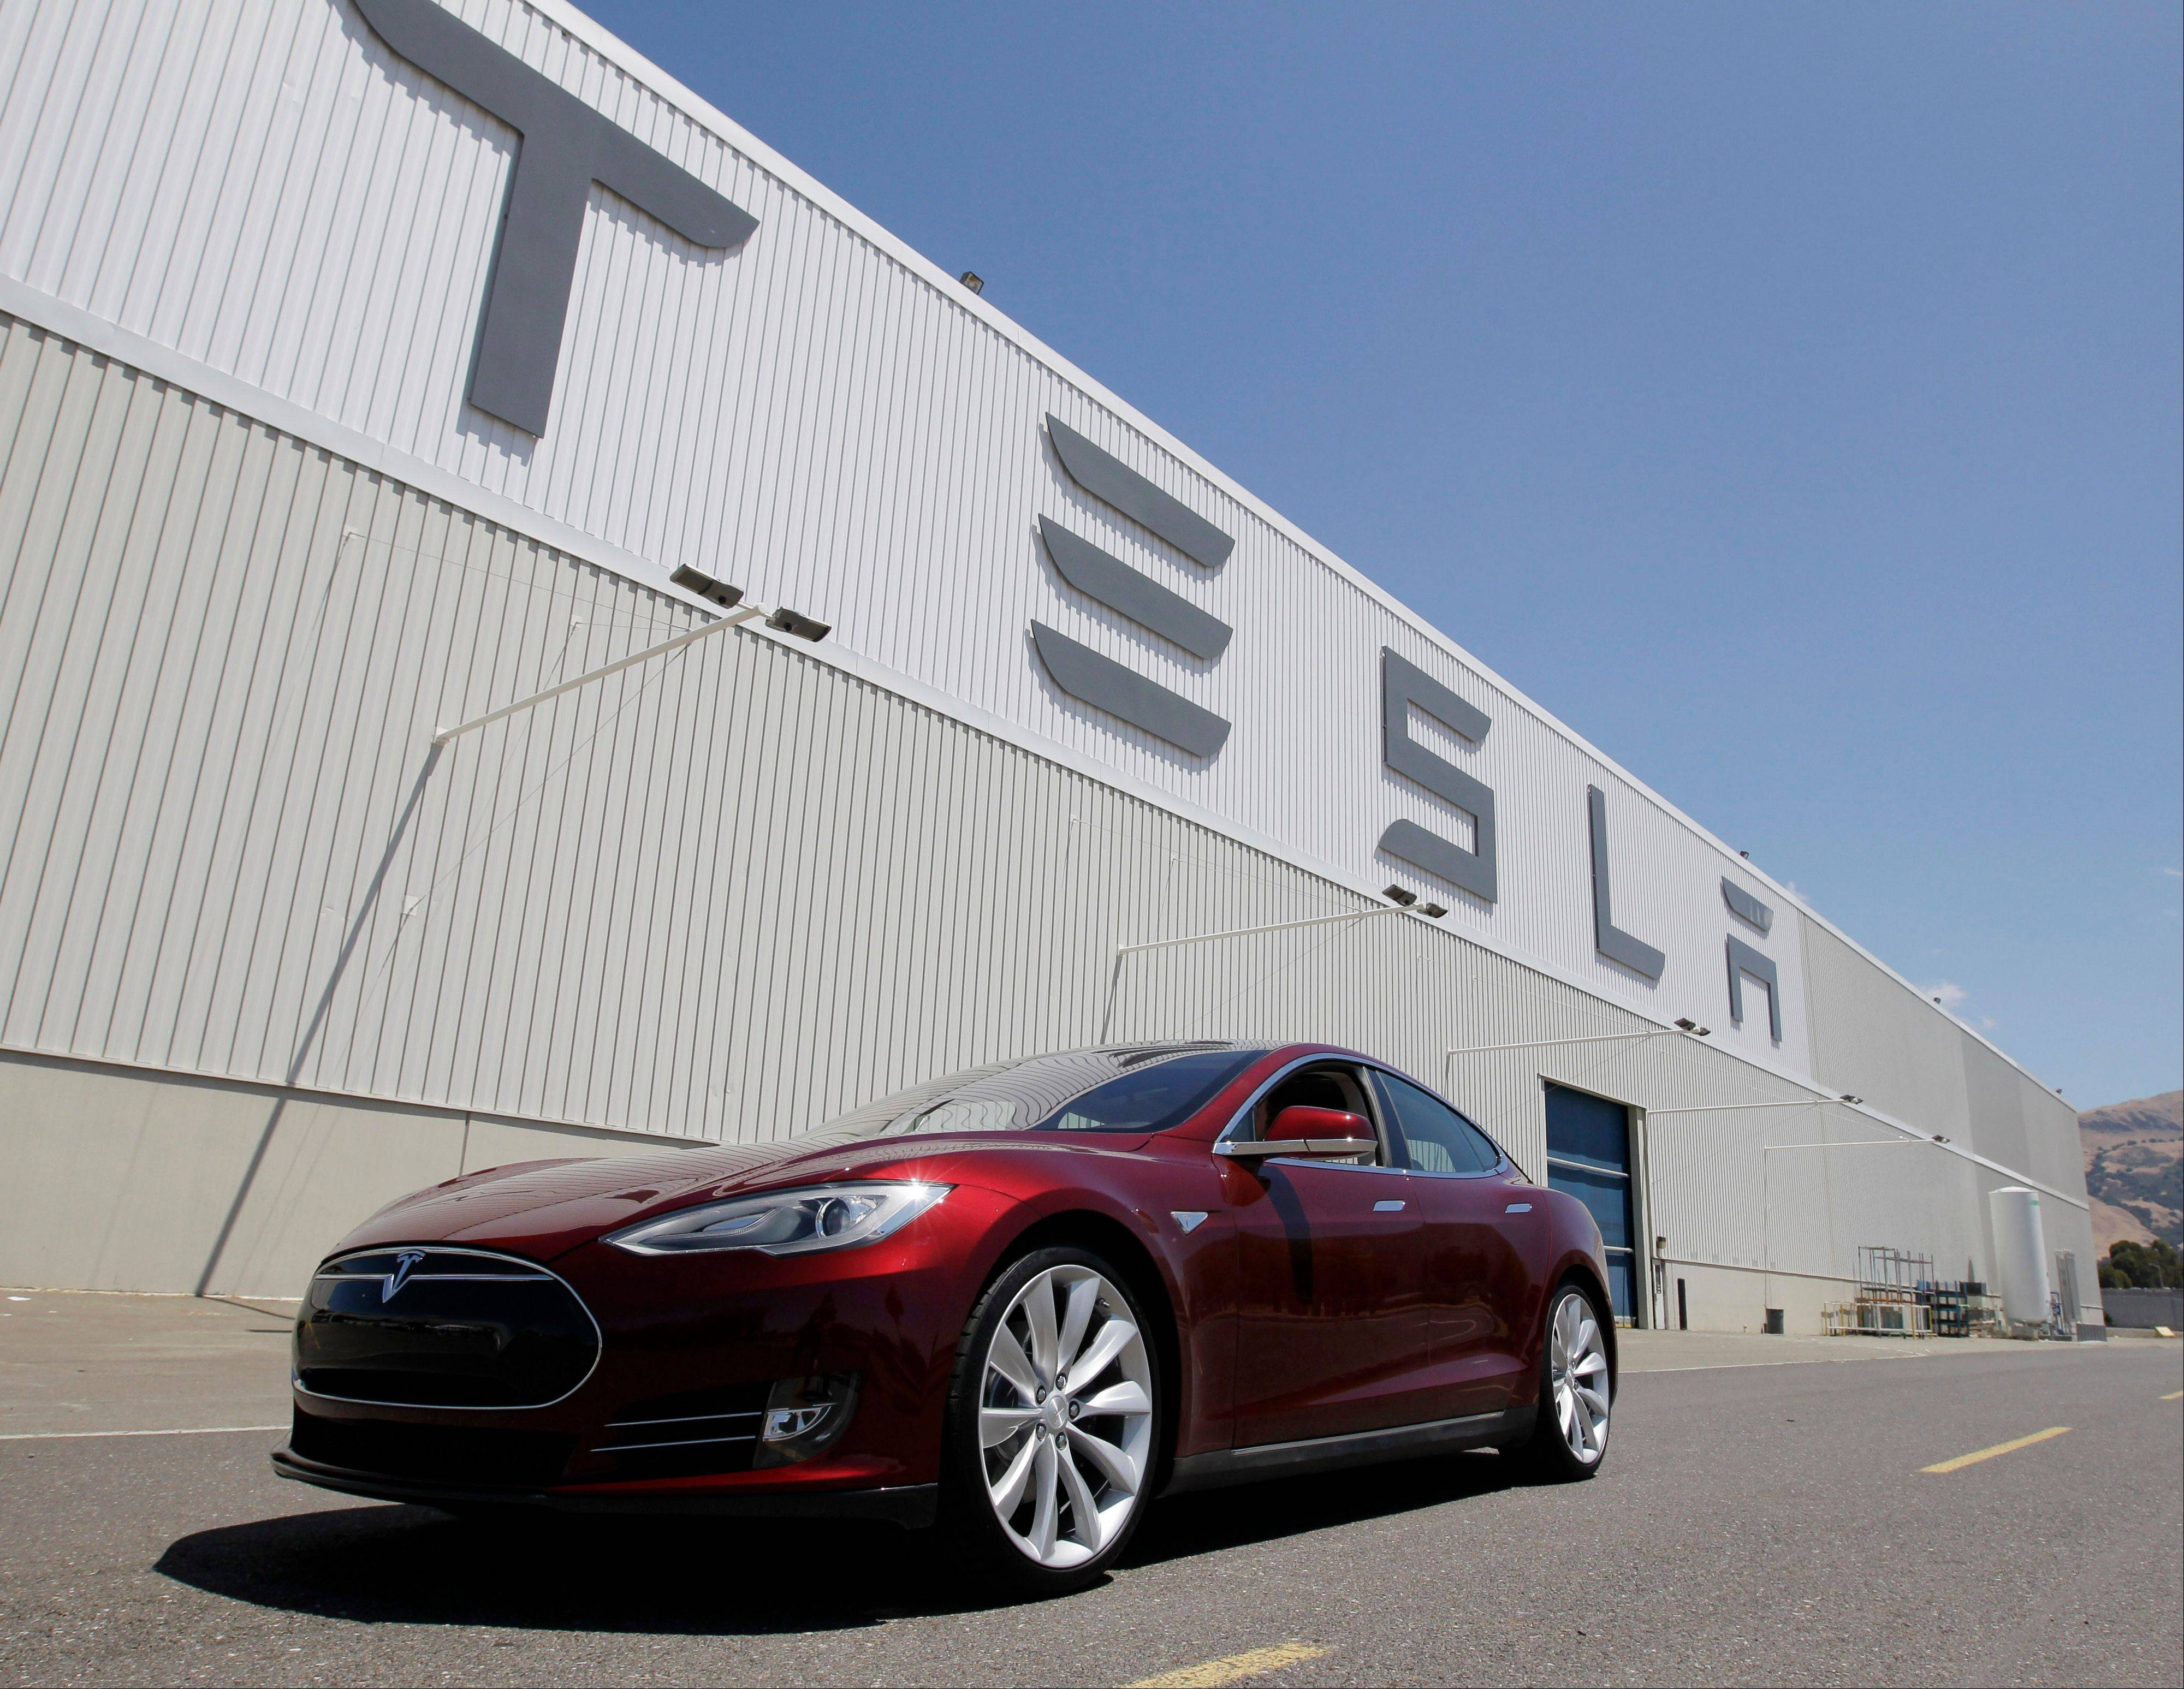 A Tesla Model S outside the Tesla factory in Fremont, Calif. The Model S is an upscale electronic car that has features such as 17-inc Wi-Fi touch screen instead of a traditional display.